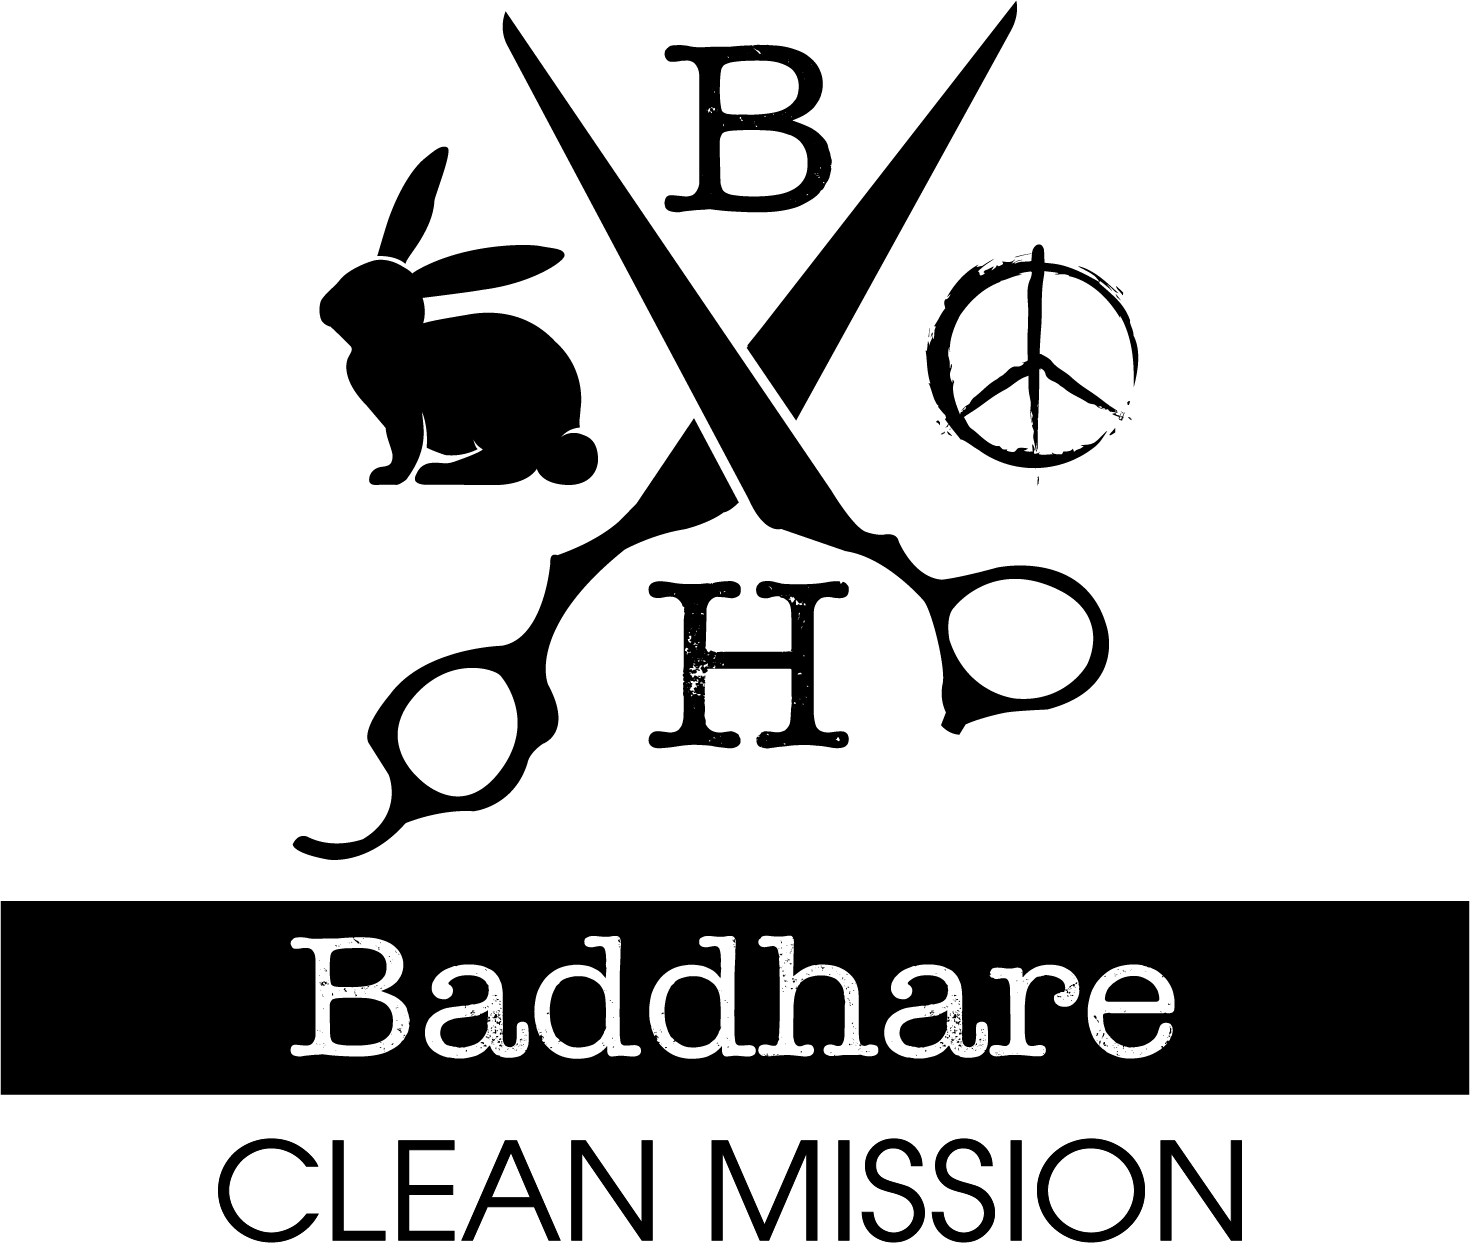 Baddhare Clean Mission